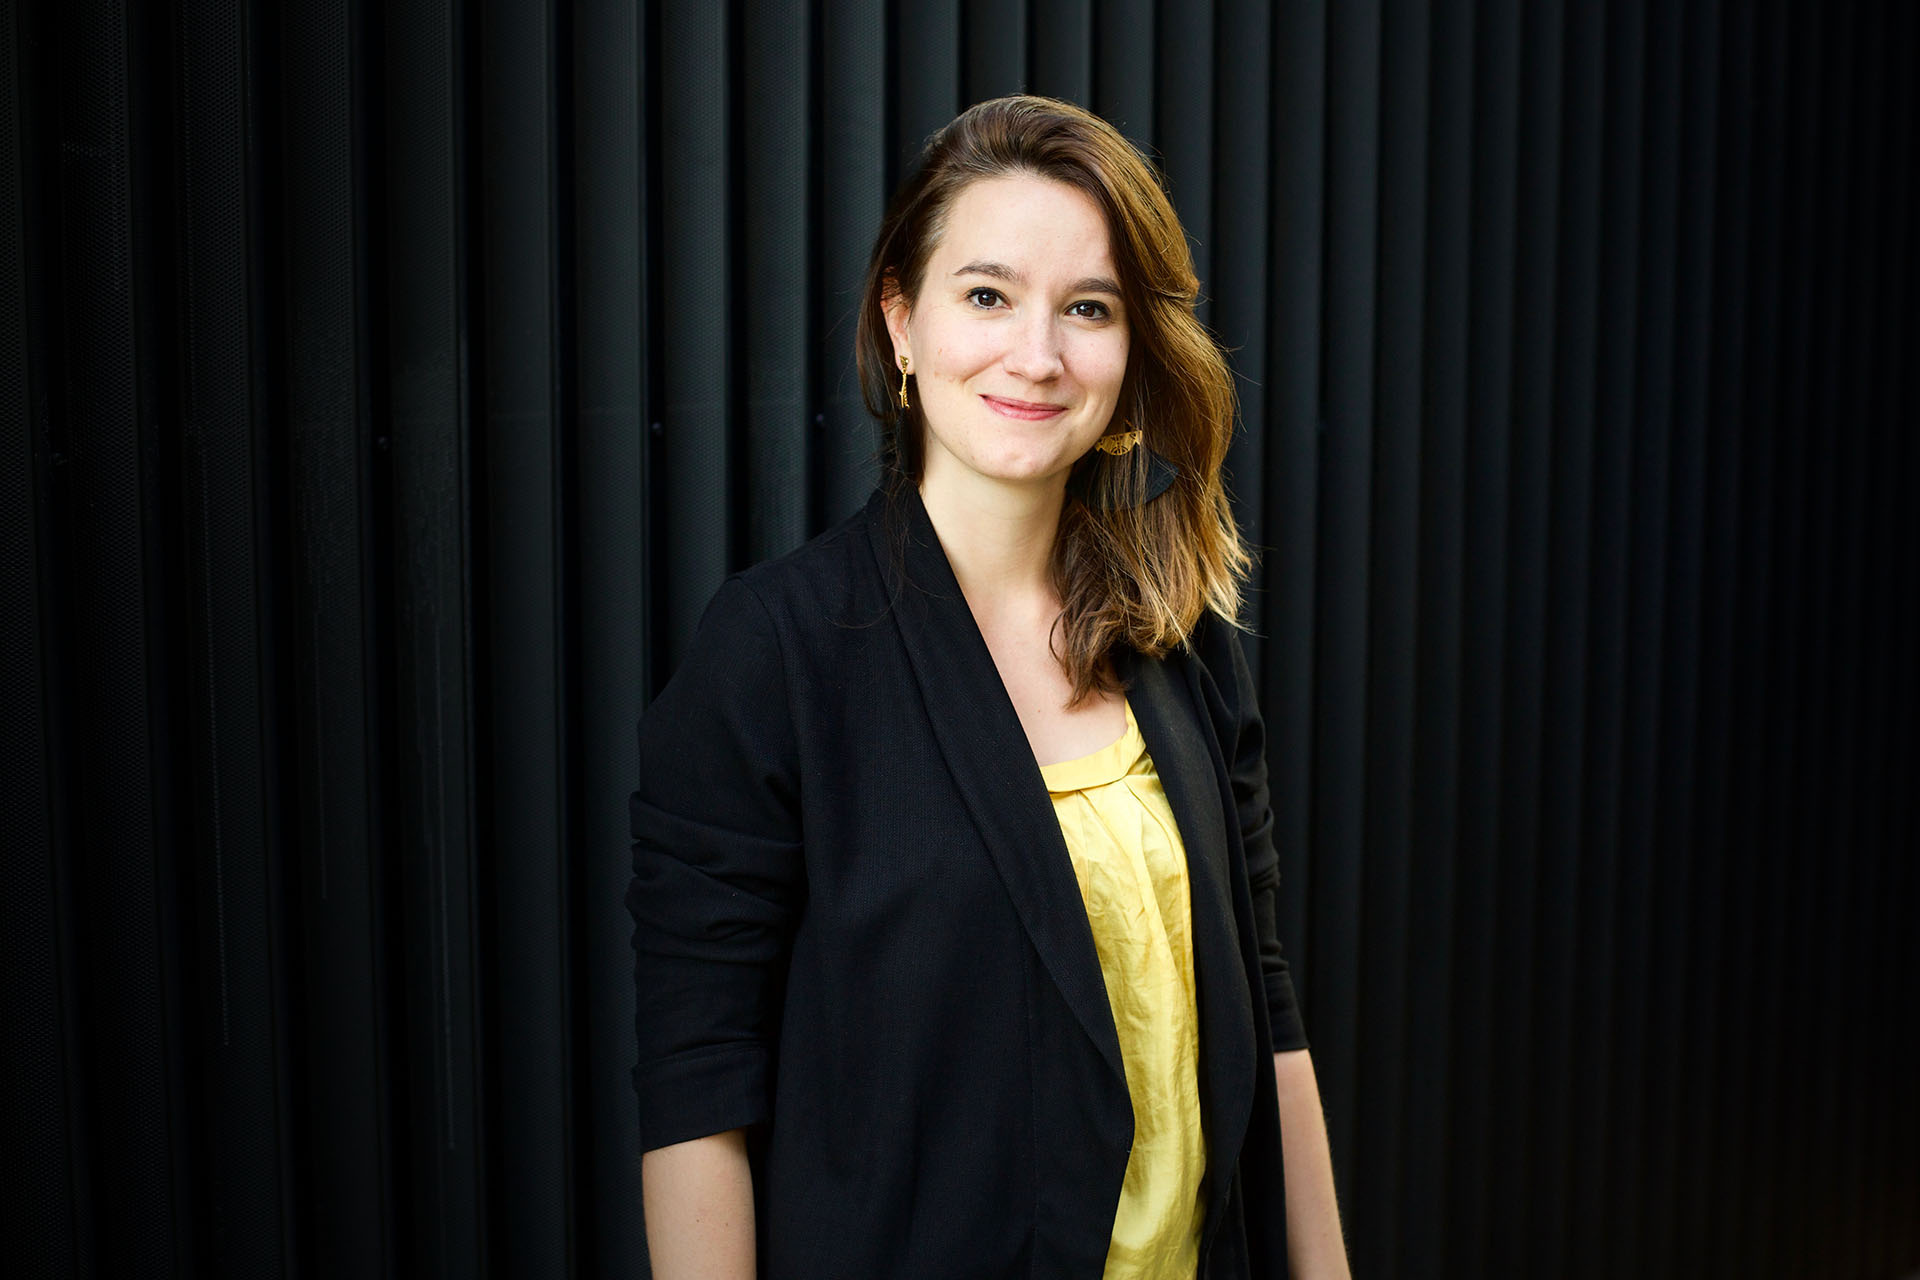 Mélanie Marcel is an engineer, neuroscientist and entrepreneur. In 2012, she decided to create SoScience, a company that promotes responsible research.